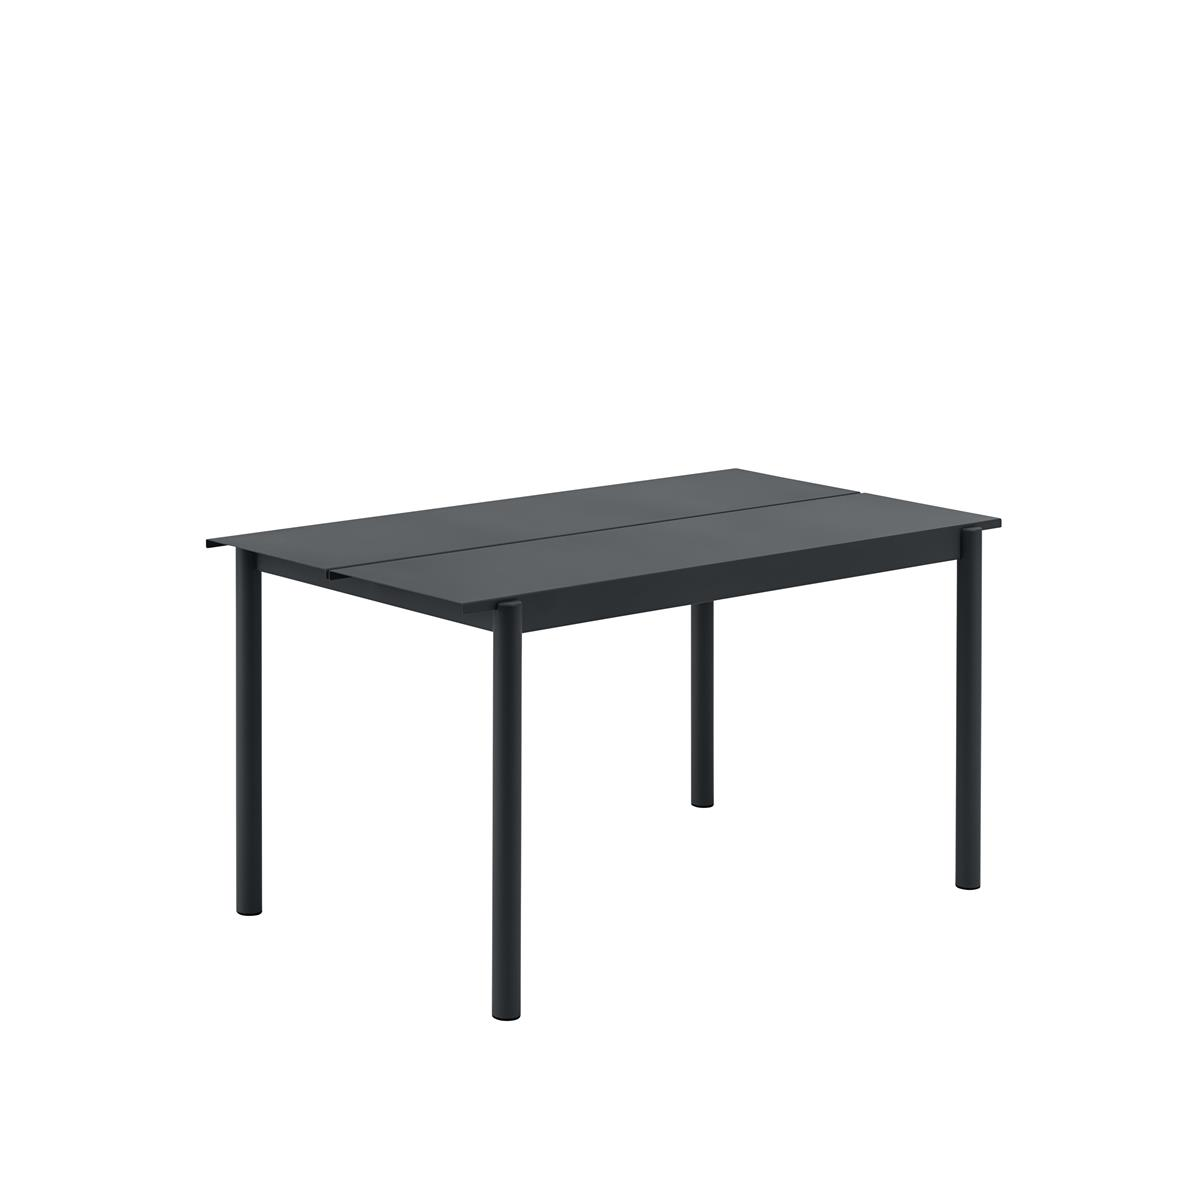 Linear Steel Table 140 x 75 x H73,5 - Black